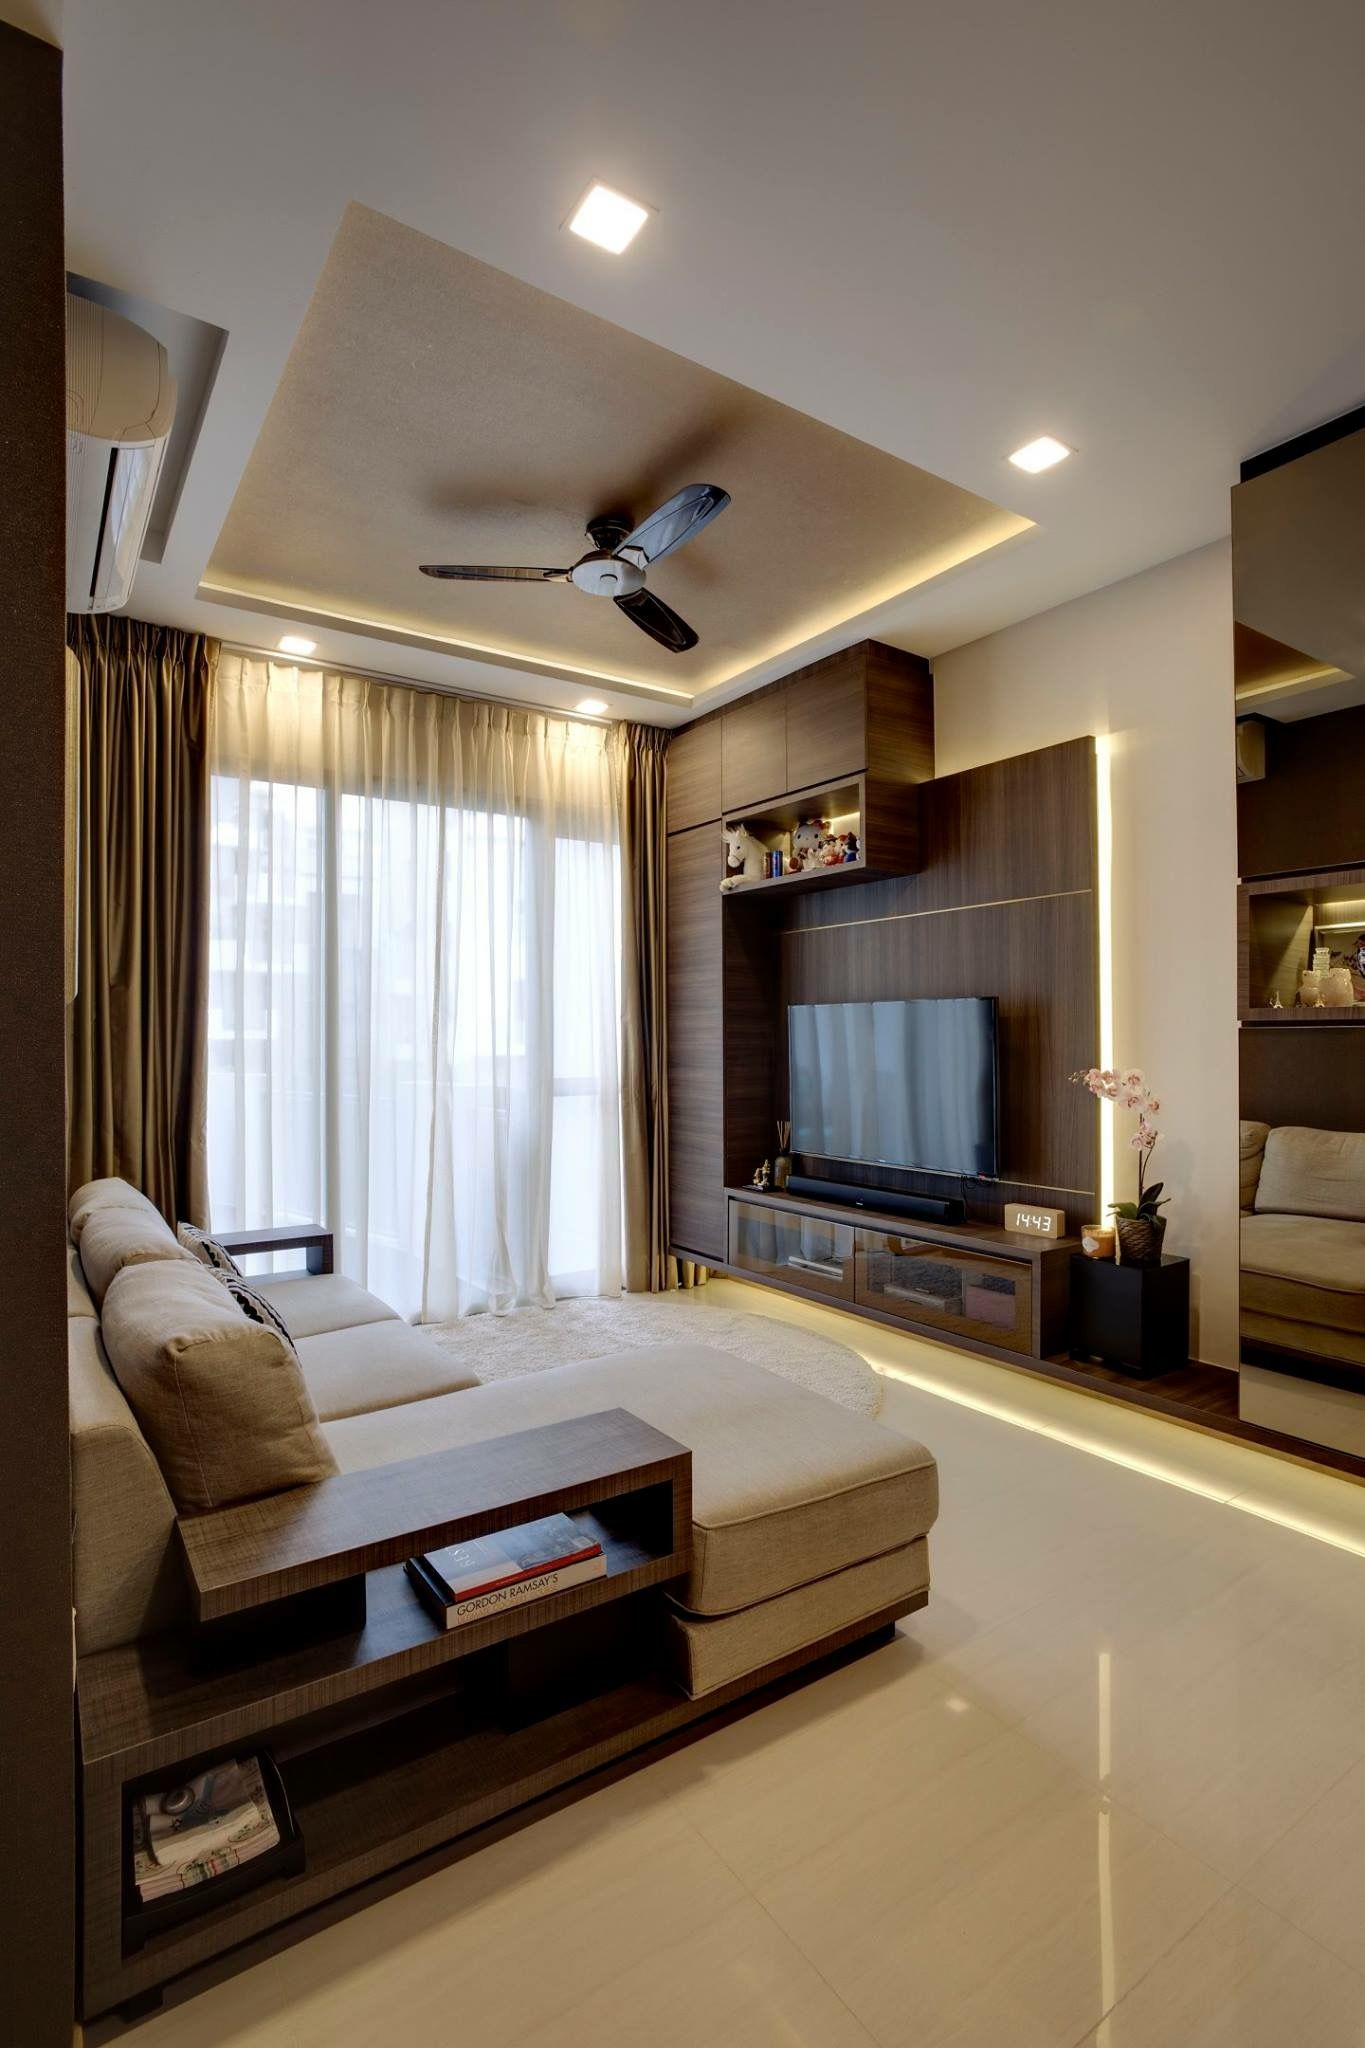 False Ceiling Designs For Living Room In Flats: Sample For: 1) Lighting + Fan Placement 2) Ceiling Height